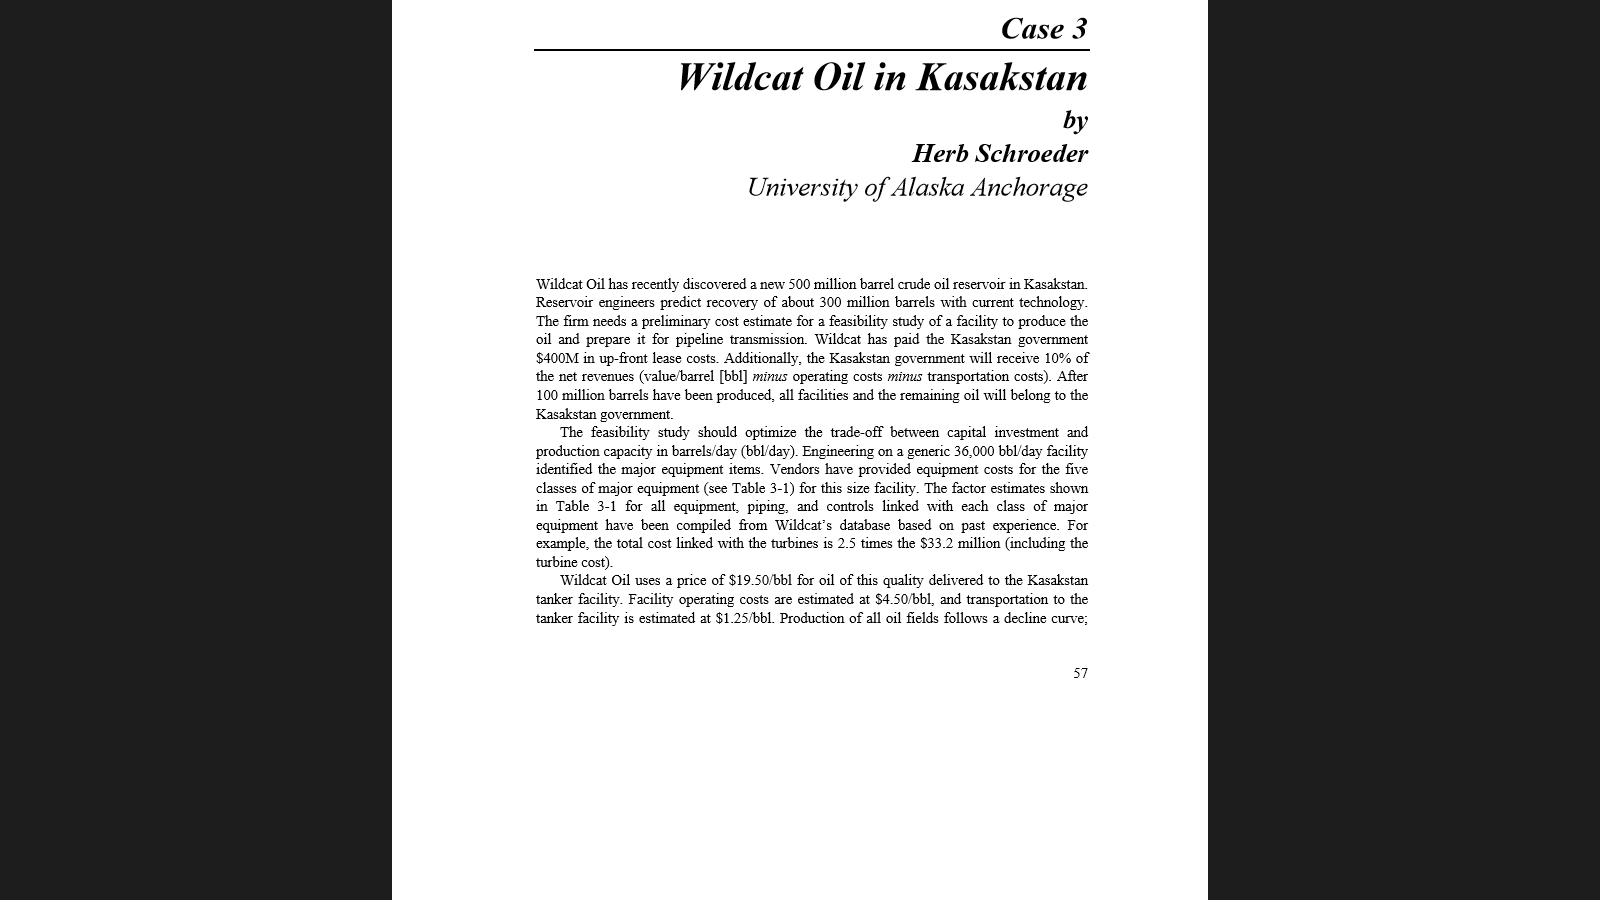 wildcat oil in kasakstan Oil is a natural resource that has supported us in every step of development the status and quality of 997 words 4 pages mexico intends to sell 60% with the oil oligarchs exploration area benefiting enterprise manganese ores processing in india mexico oil oligarch plans to open hybrid operation of the door to private capital.